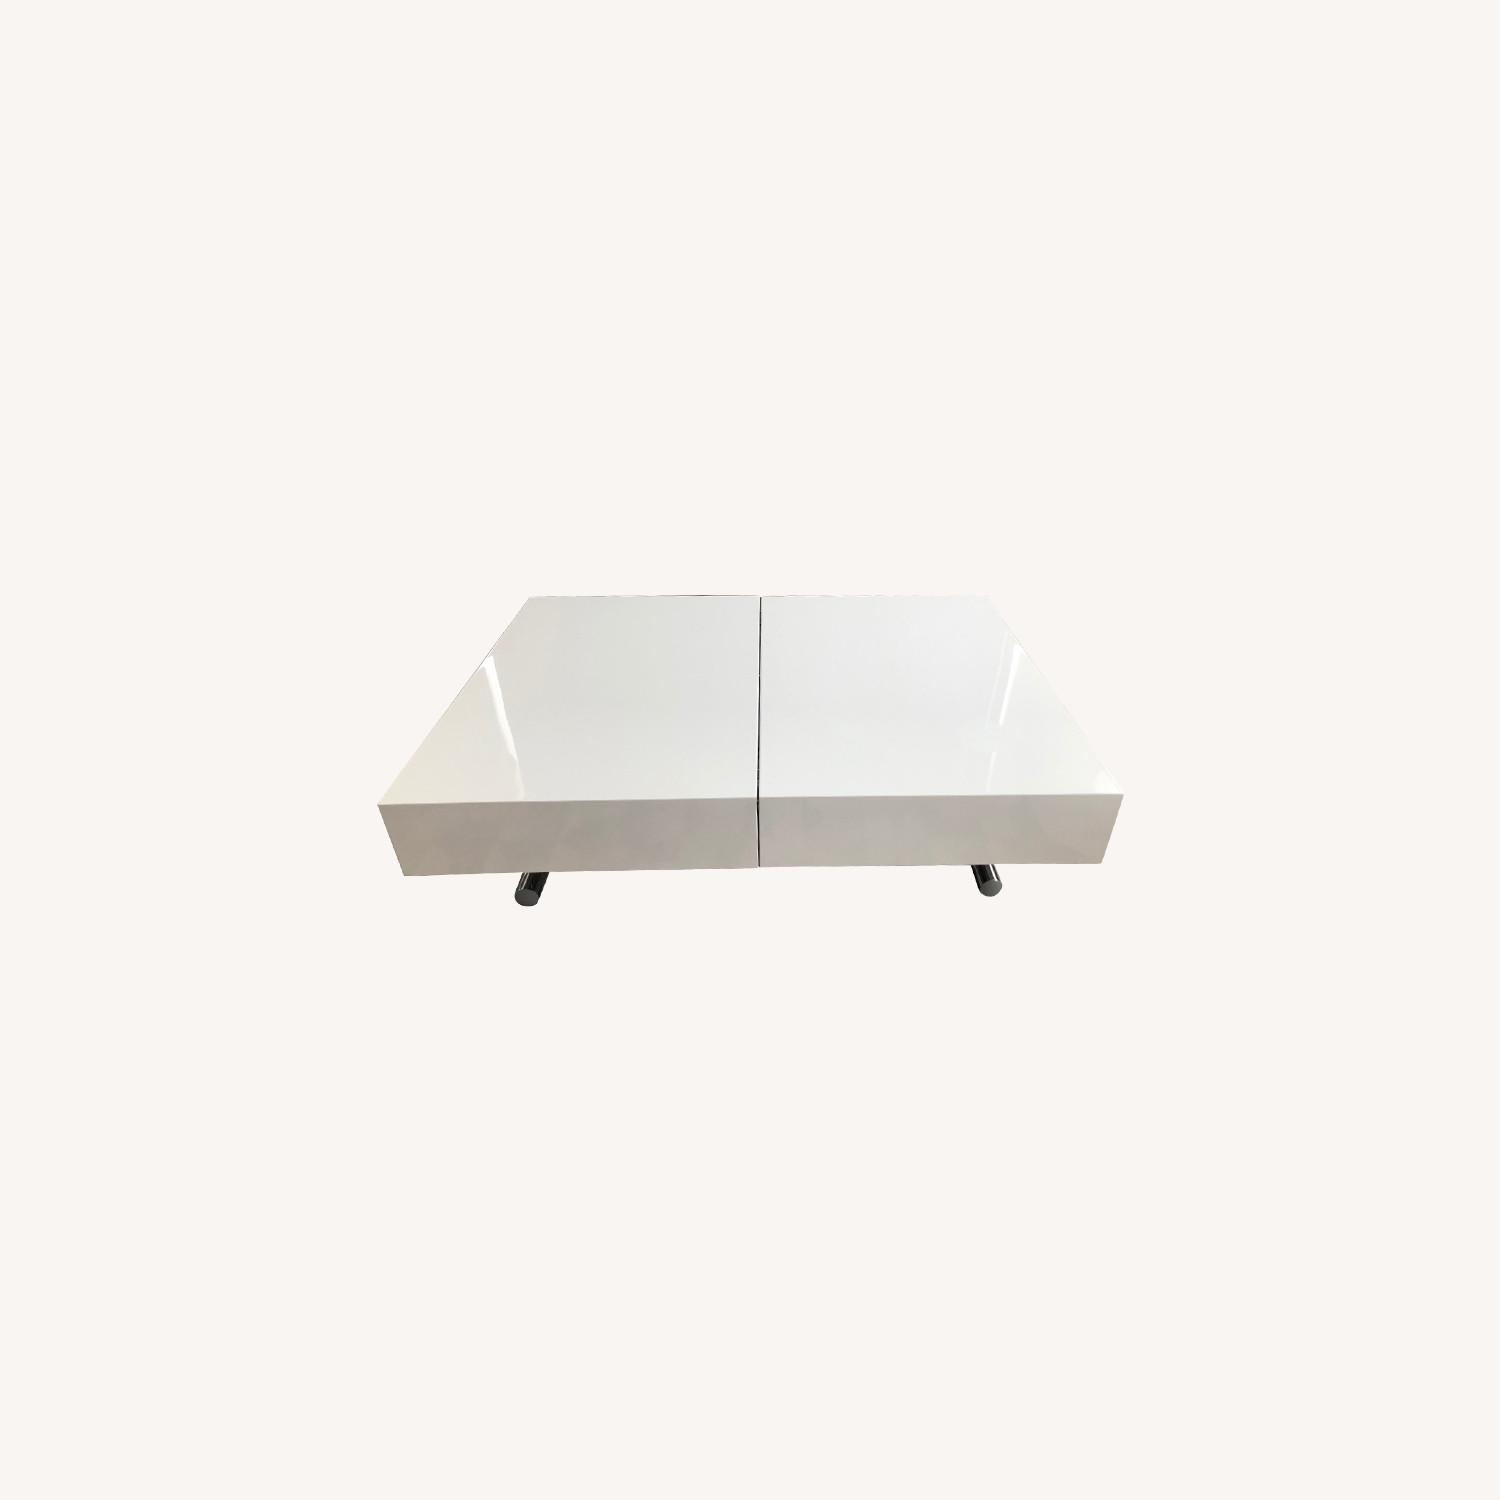 expand furniture box coffee table to dining table